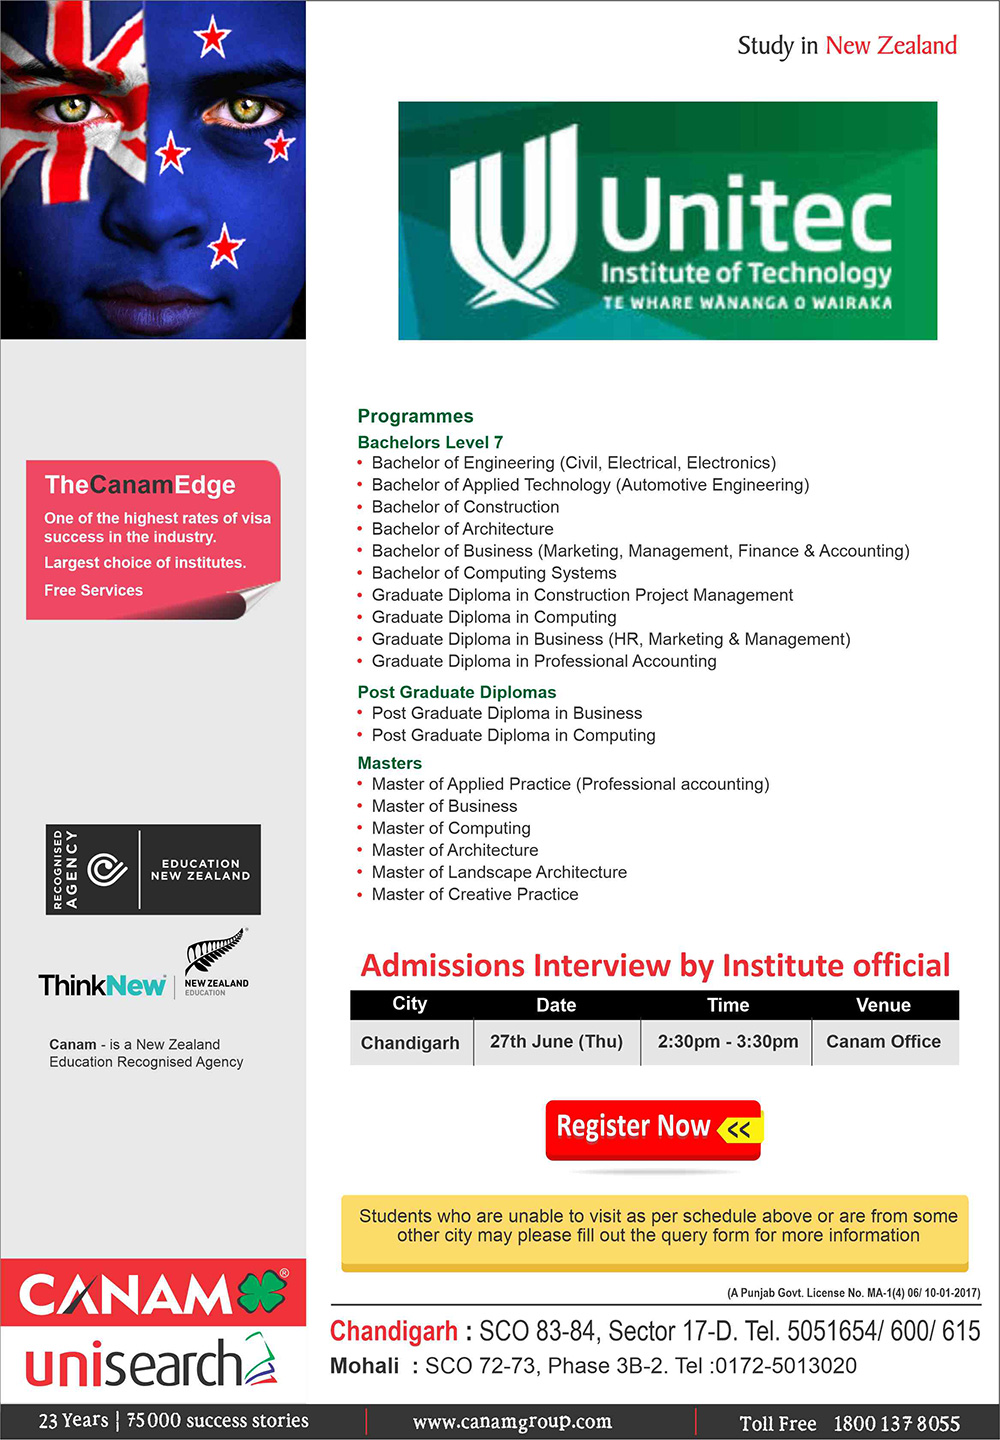 unitec-institute-of-technology